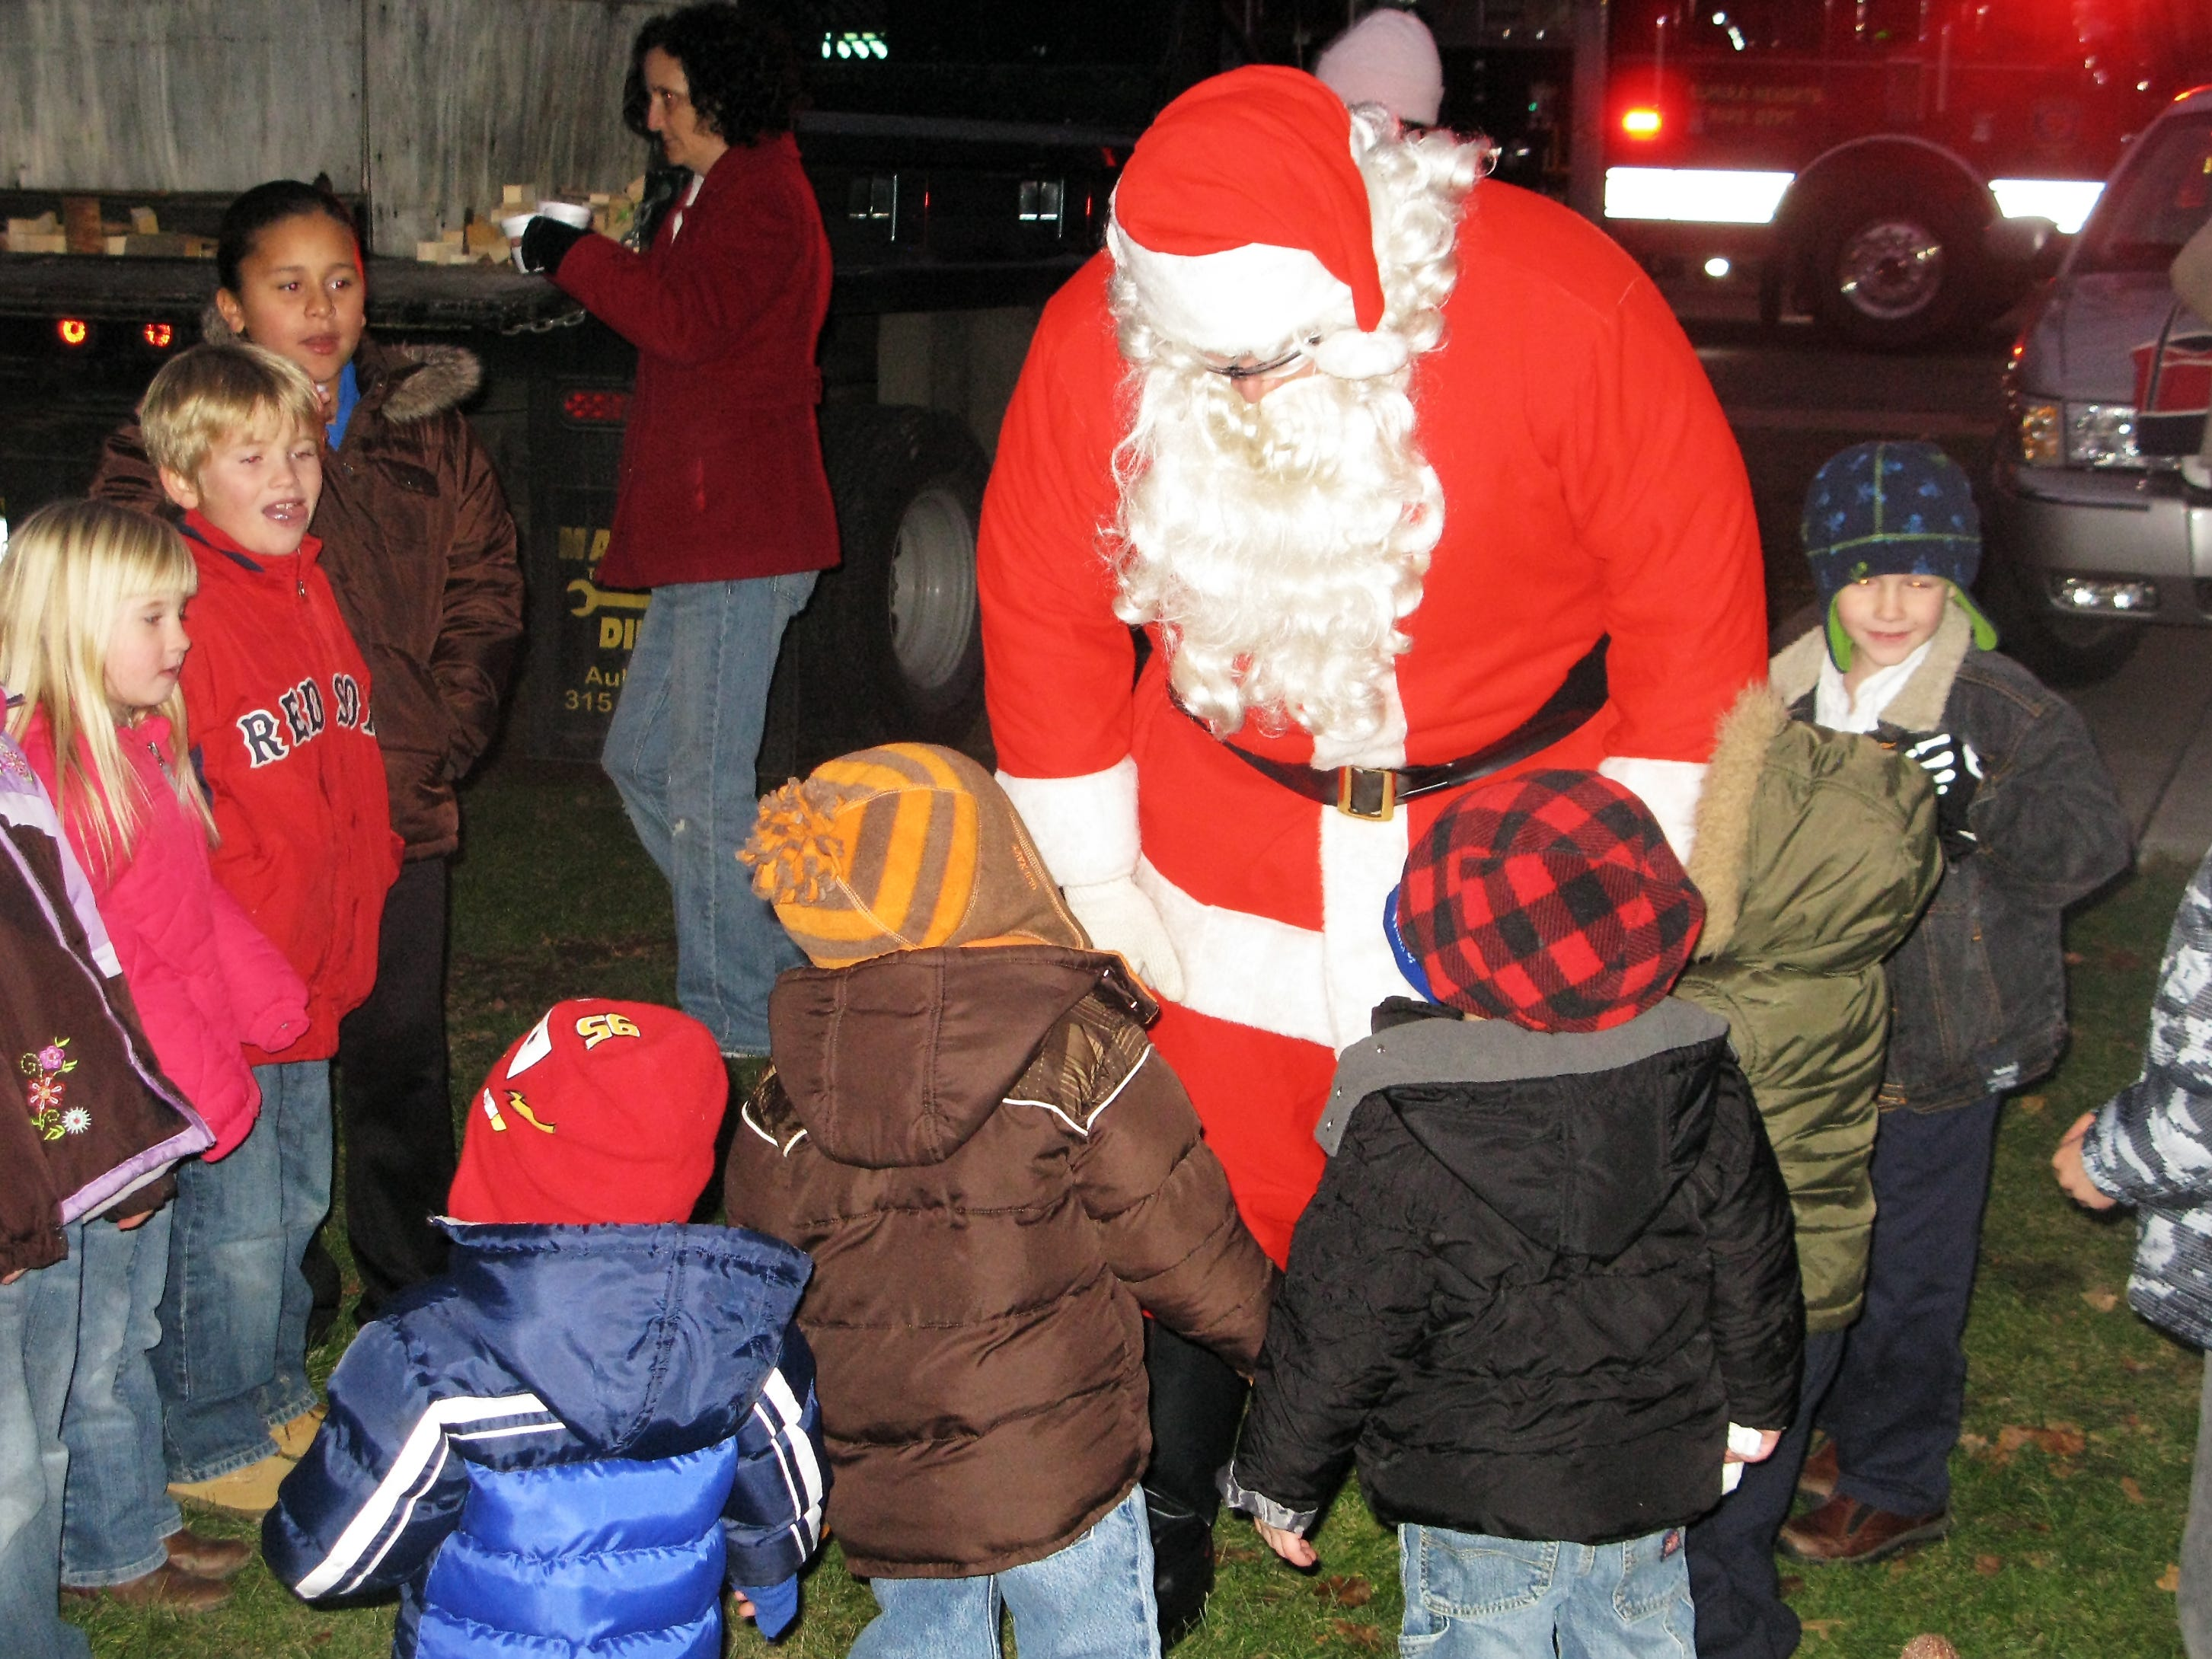 Santa Claus is surrounded by children as he arrives at Oakwood Park in Elmira Heights for the 2010 Lights in the Heights festival.